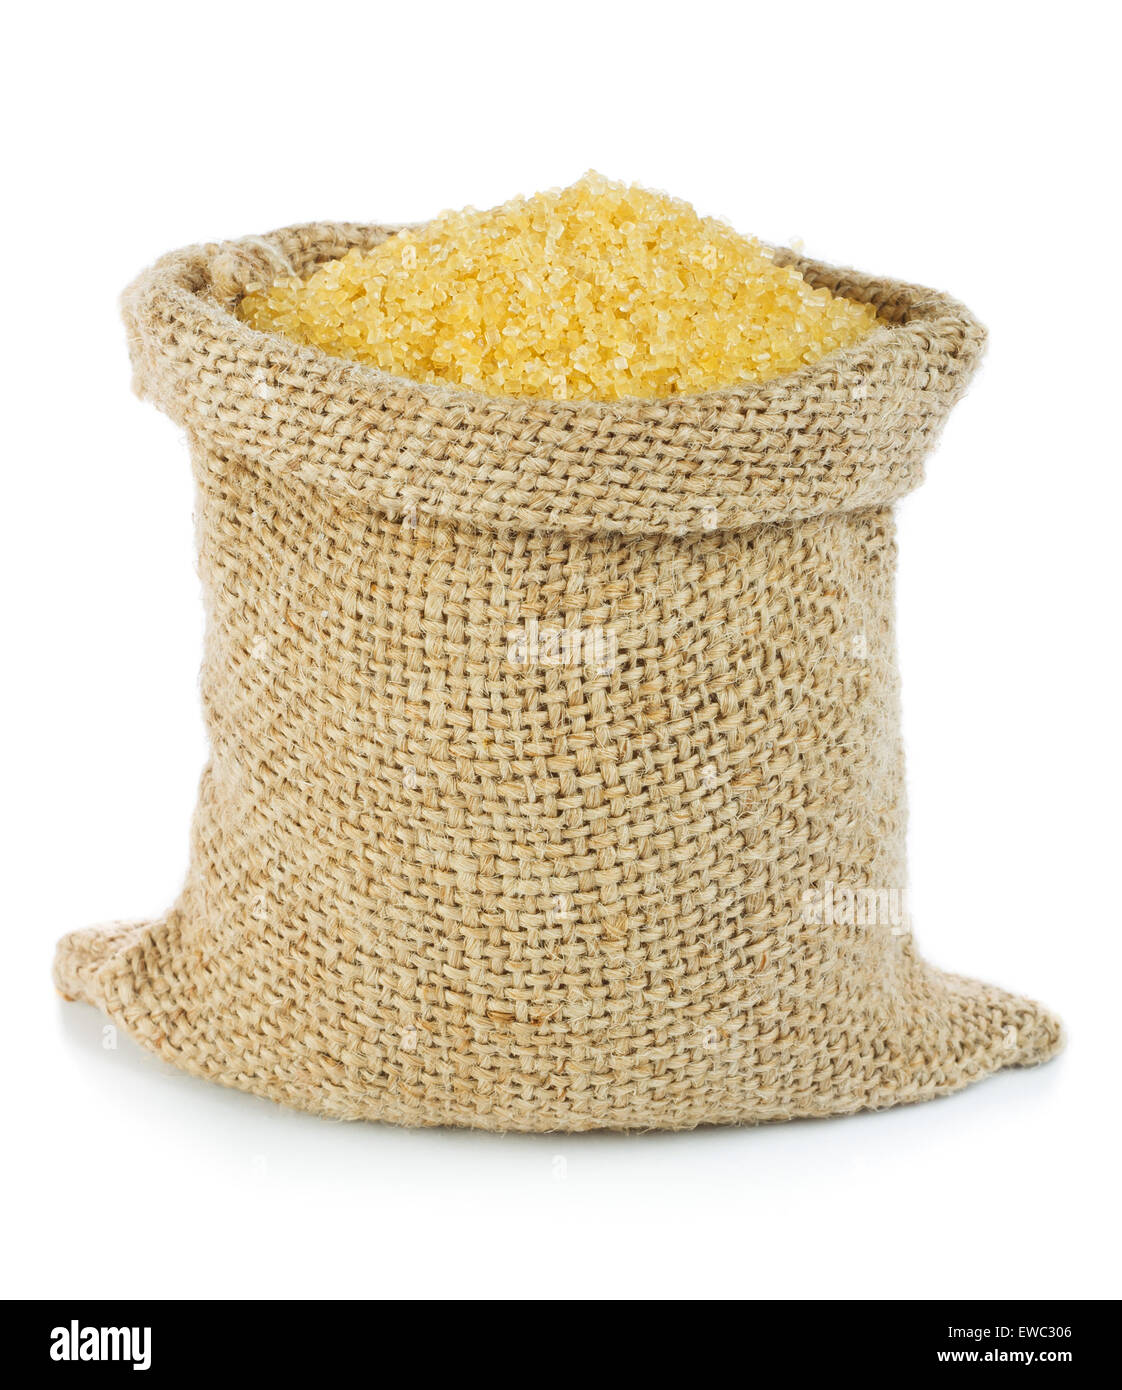 Cane sugar in small burlap sack - Stock Image